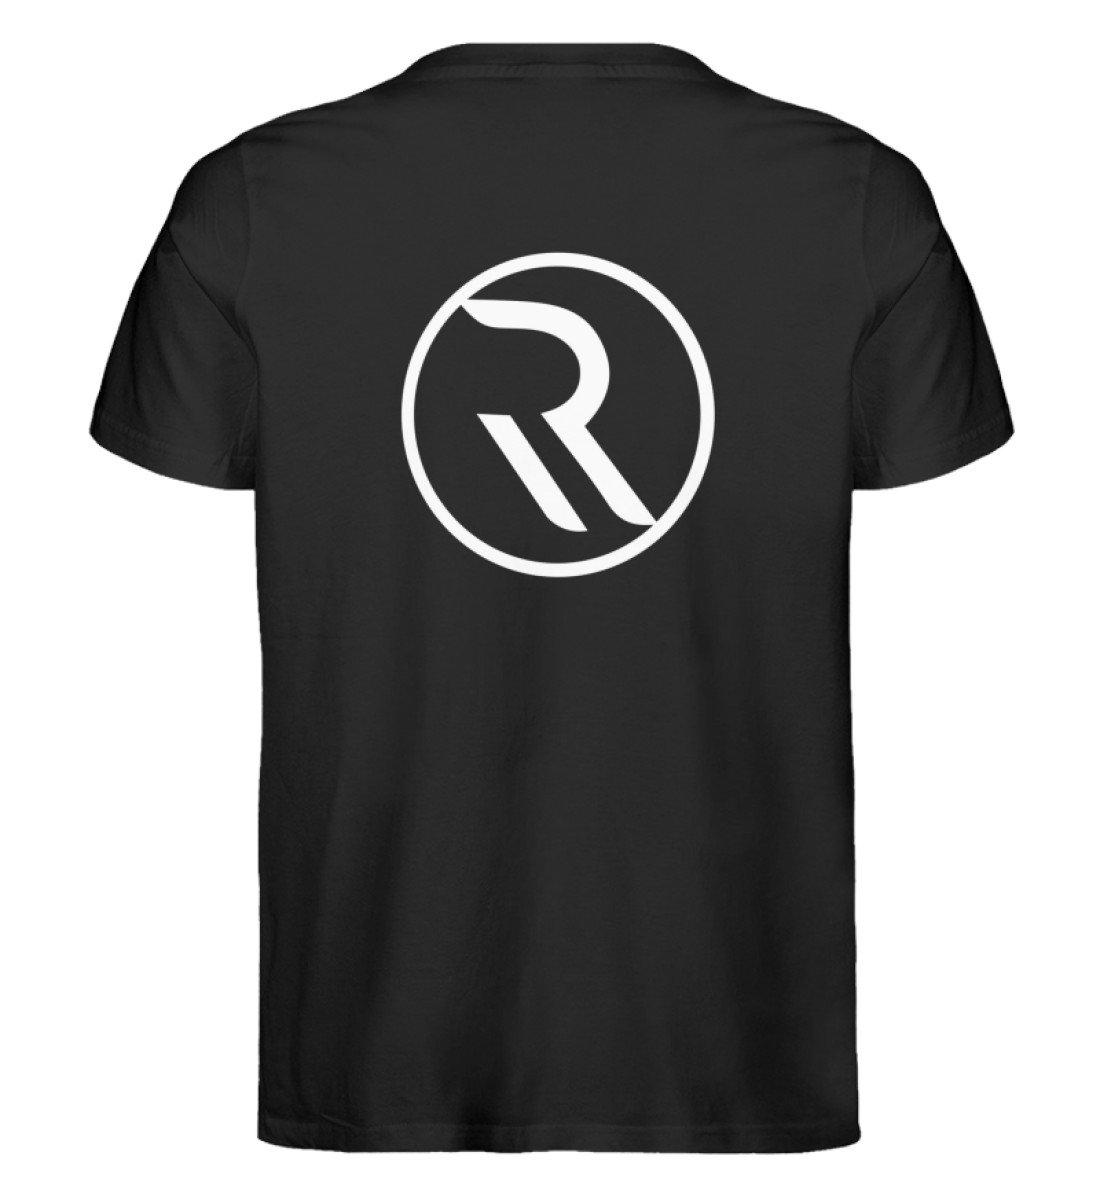 ROPEMAKER RAVE-ON!®️ BLACK T-SHIRT - Herren Premium Organic Shirt Creator T-Shirt ST/ST Black / S - Rave On!® der Club & Techno Szene Shop für Coole Junge Mode Streetwear Style & Fashion Outfits + Sexy Festival 420 Stuff